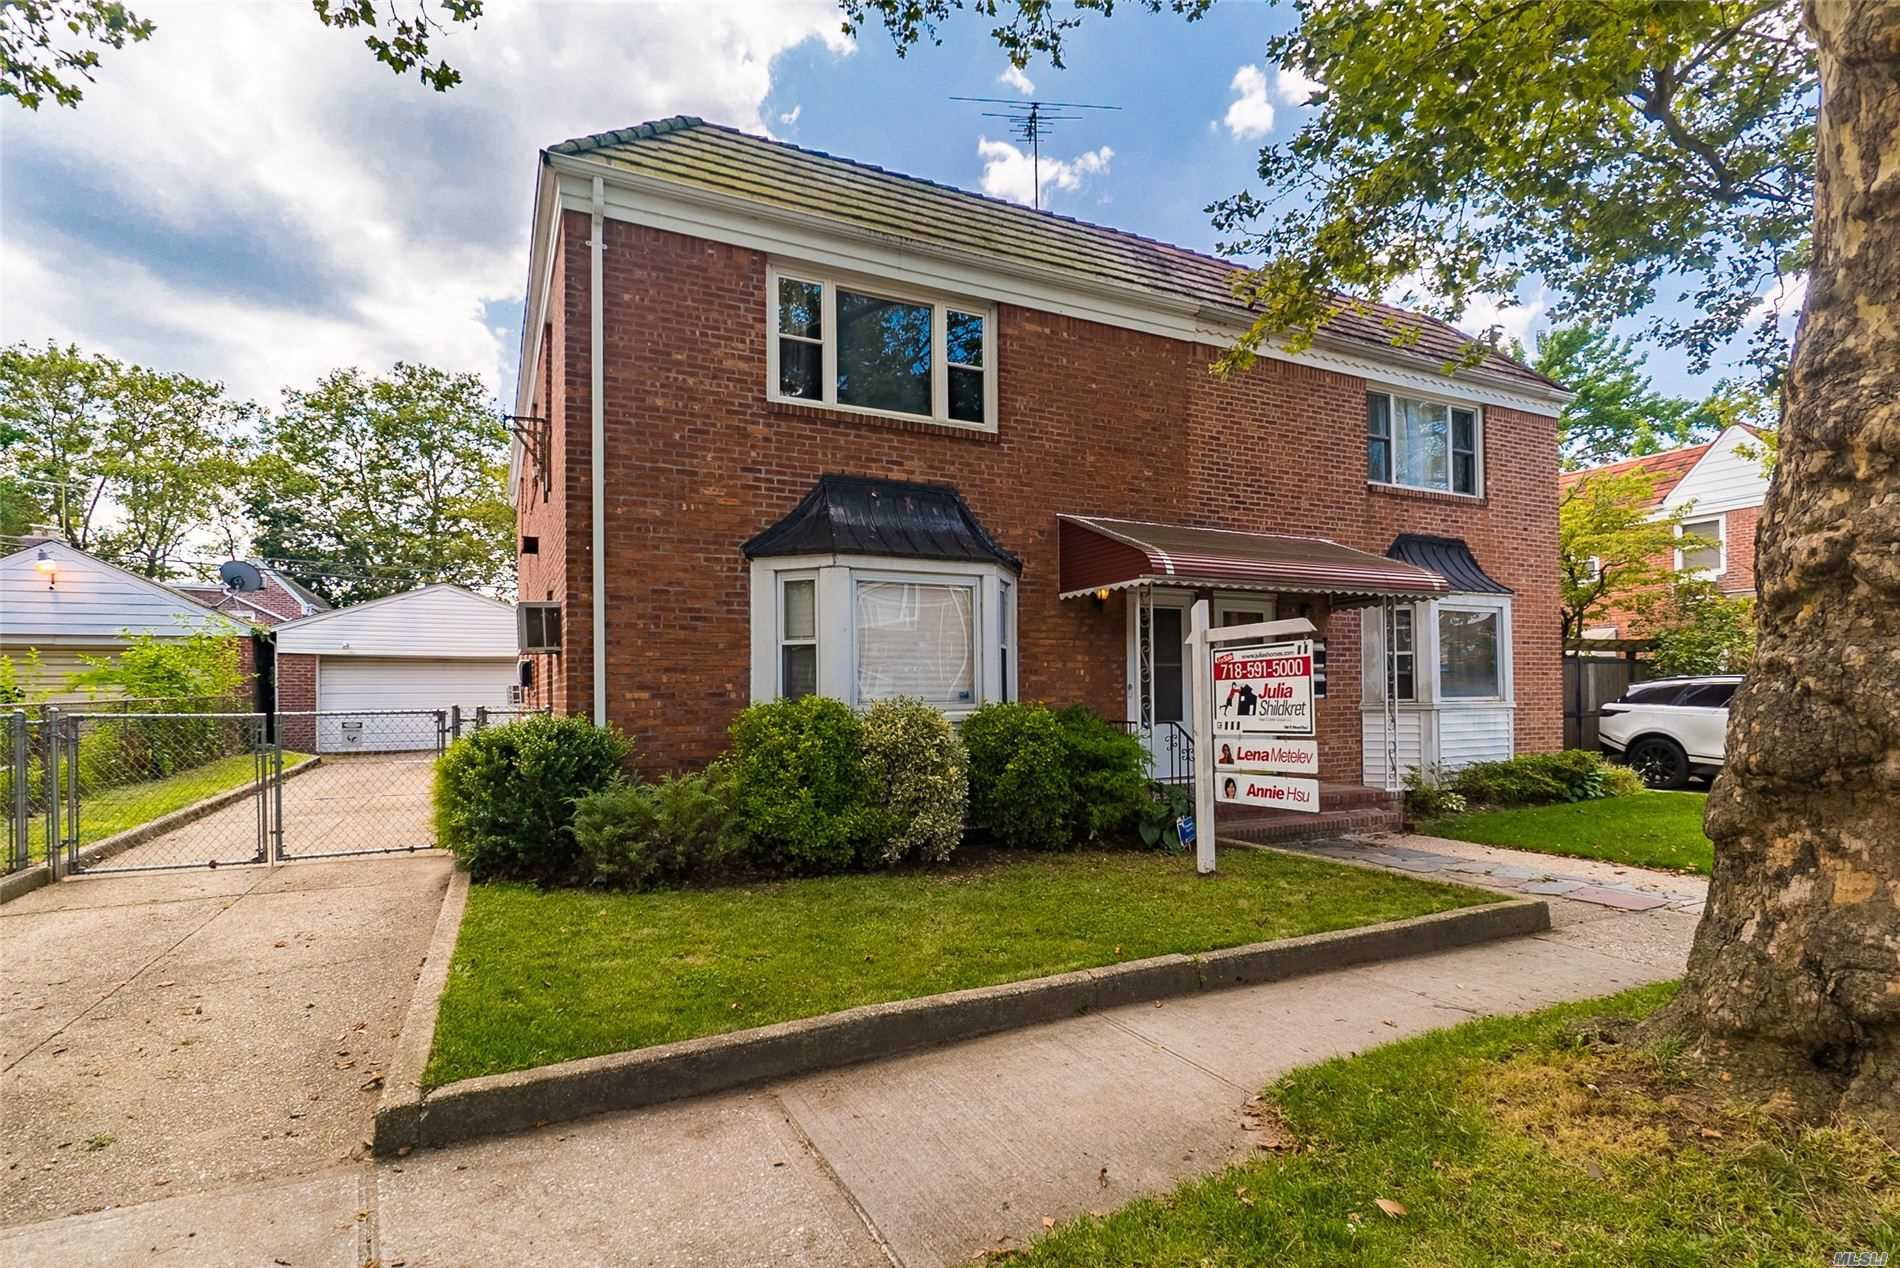 Property for sale at 75-38 198th Street, Fresh Meadows NY 11366, Fresh Meadows,  New York 11366